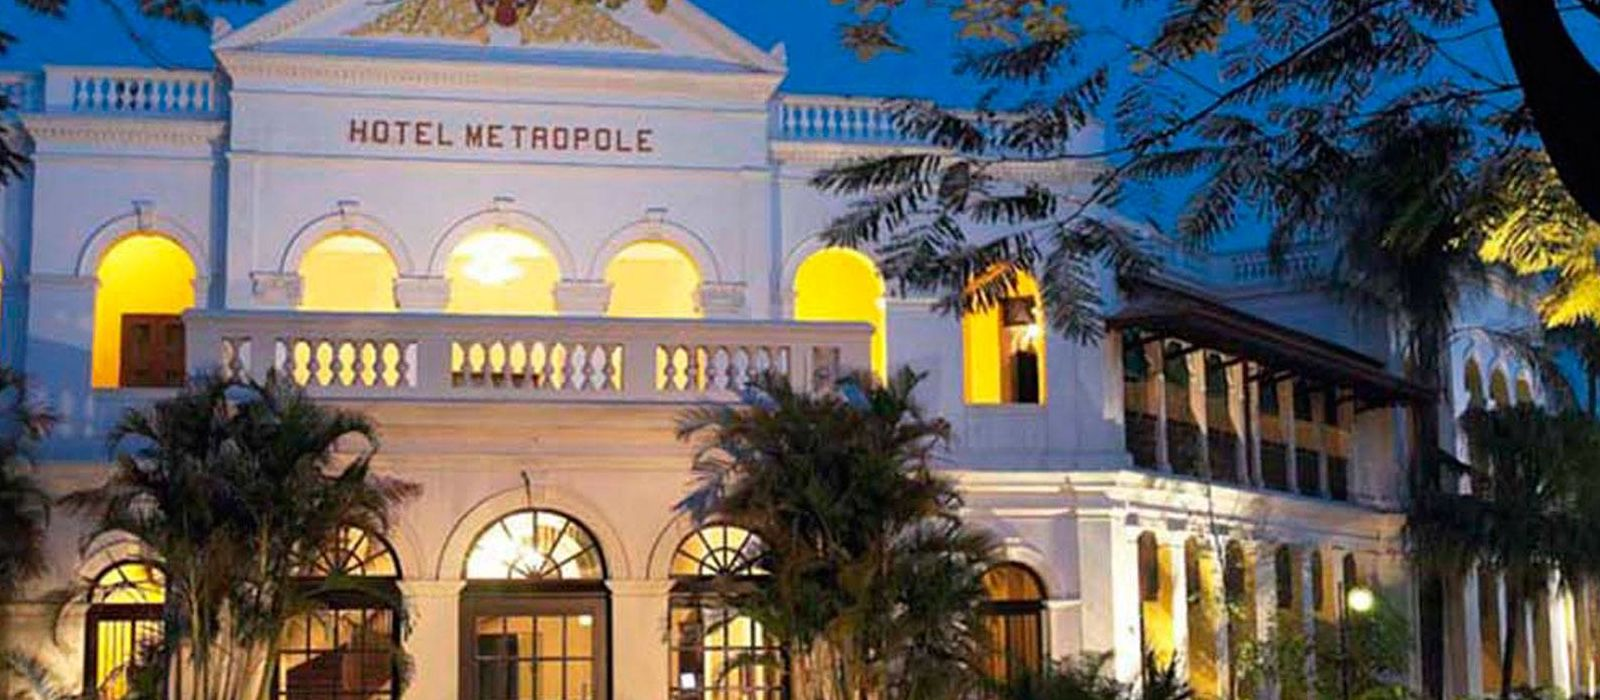 Hotel Royal Orchid Metropole South India